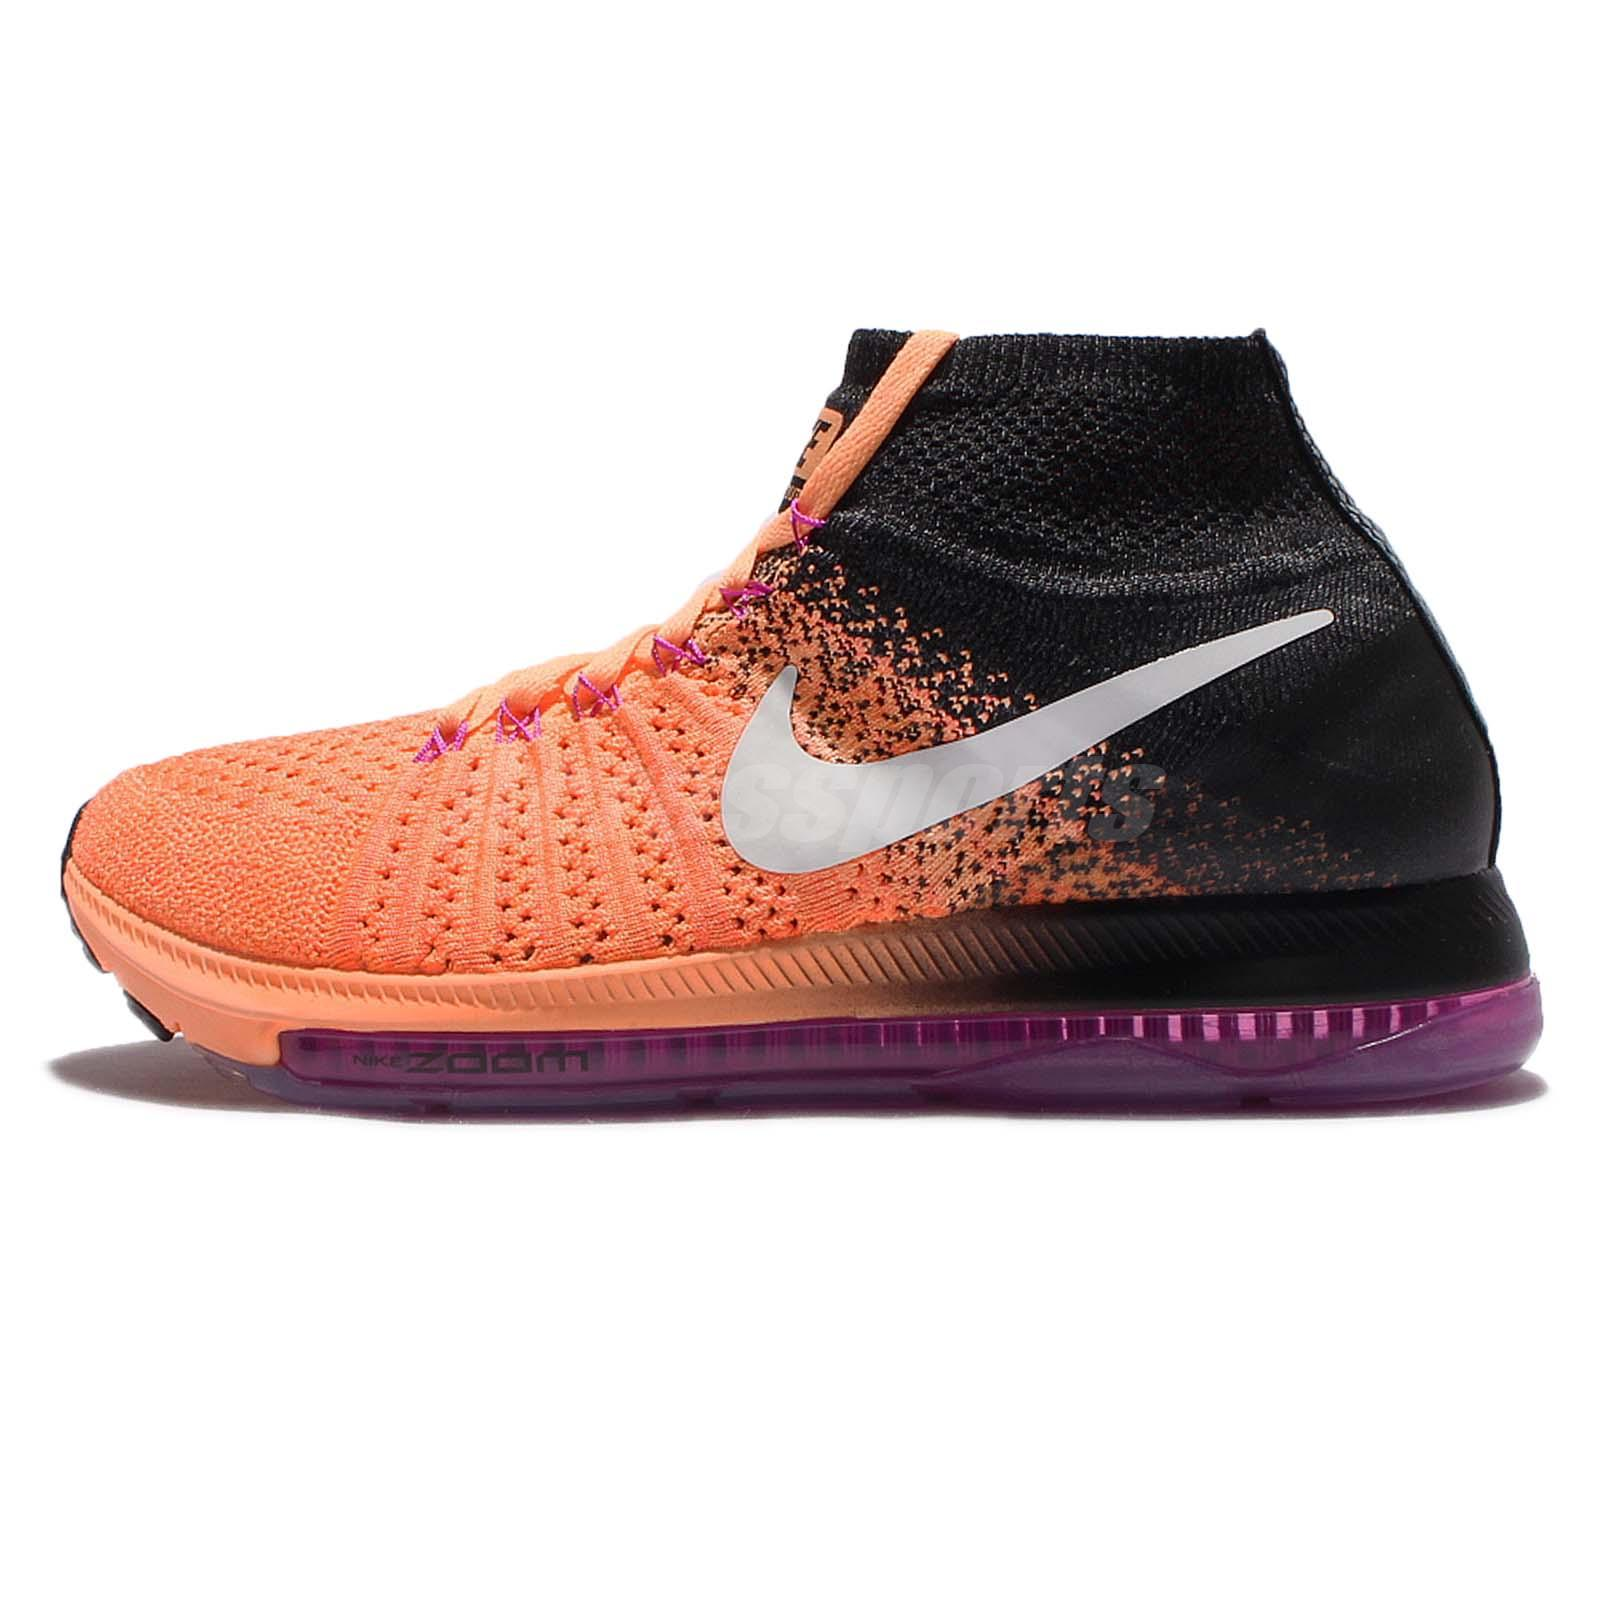 innovative design 7c476 e8844 nike flyknit racer pureplatinum ds